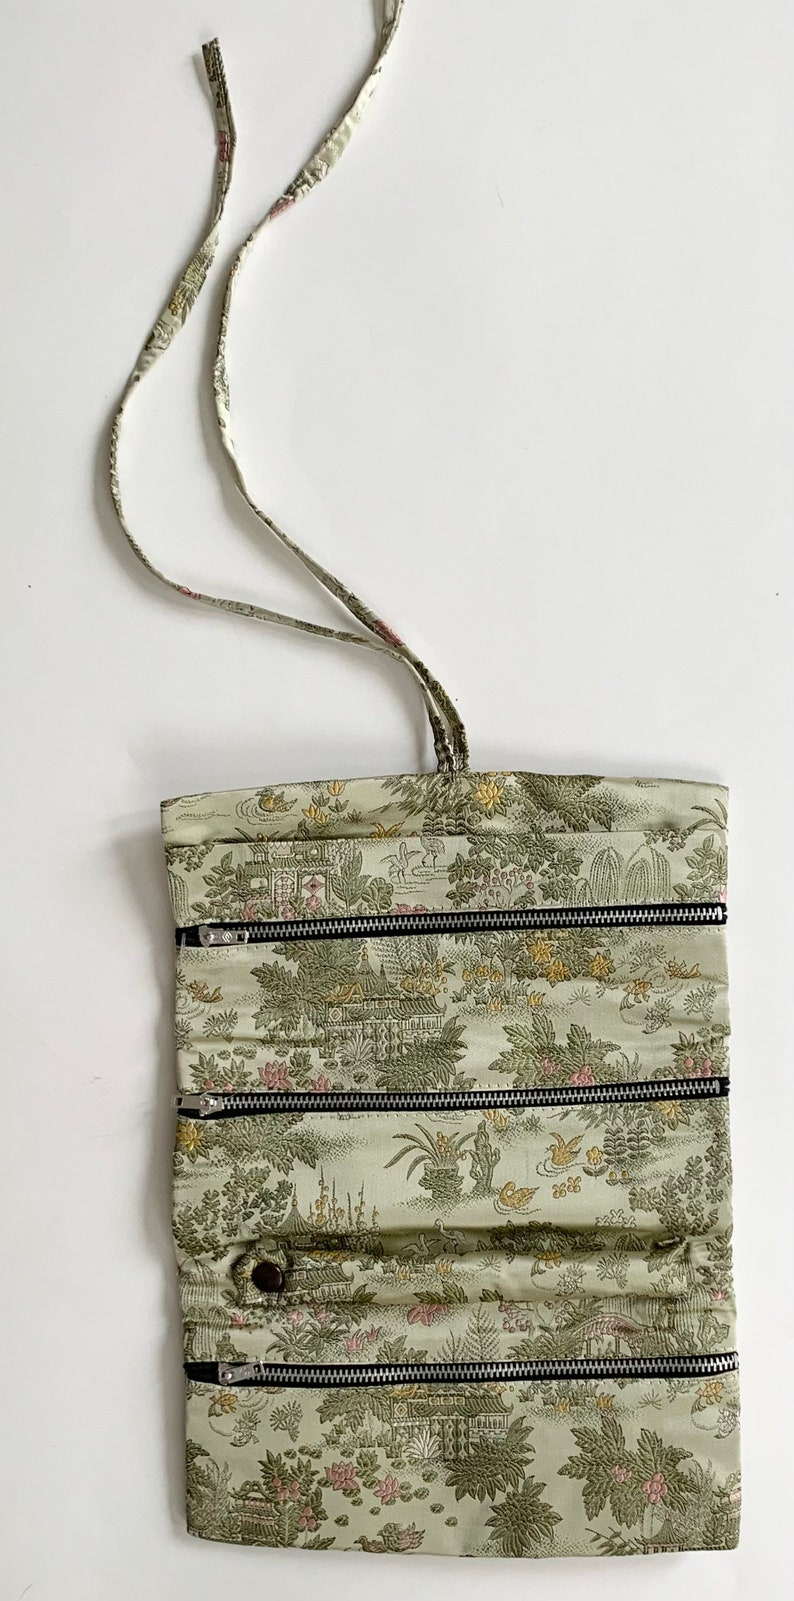 Handmade Silk Jewelry Roll Pouch Bag for Travel Pale Green Chinese Floral Fauna Motif Vintage Taching Hand Made in China